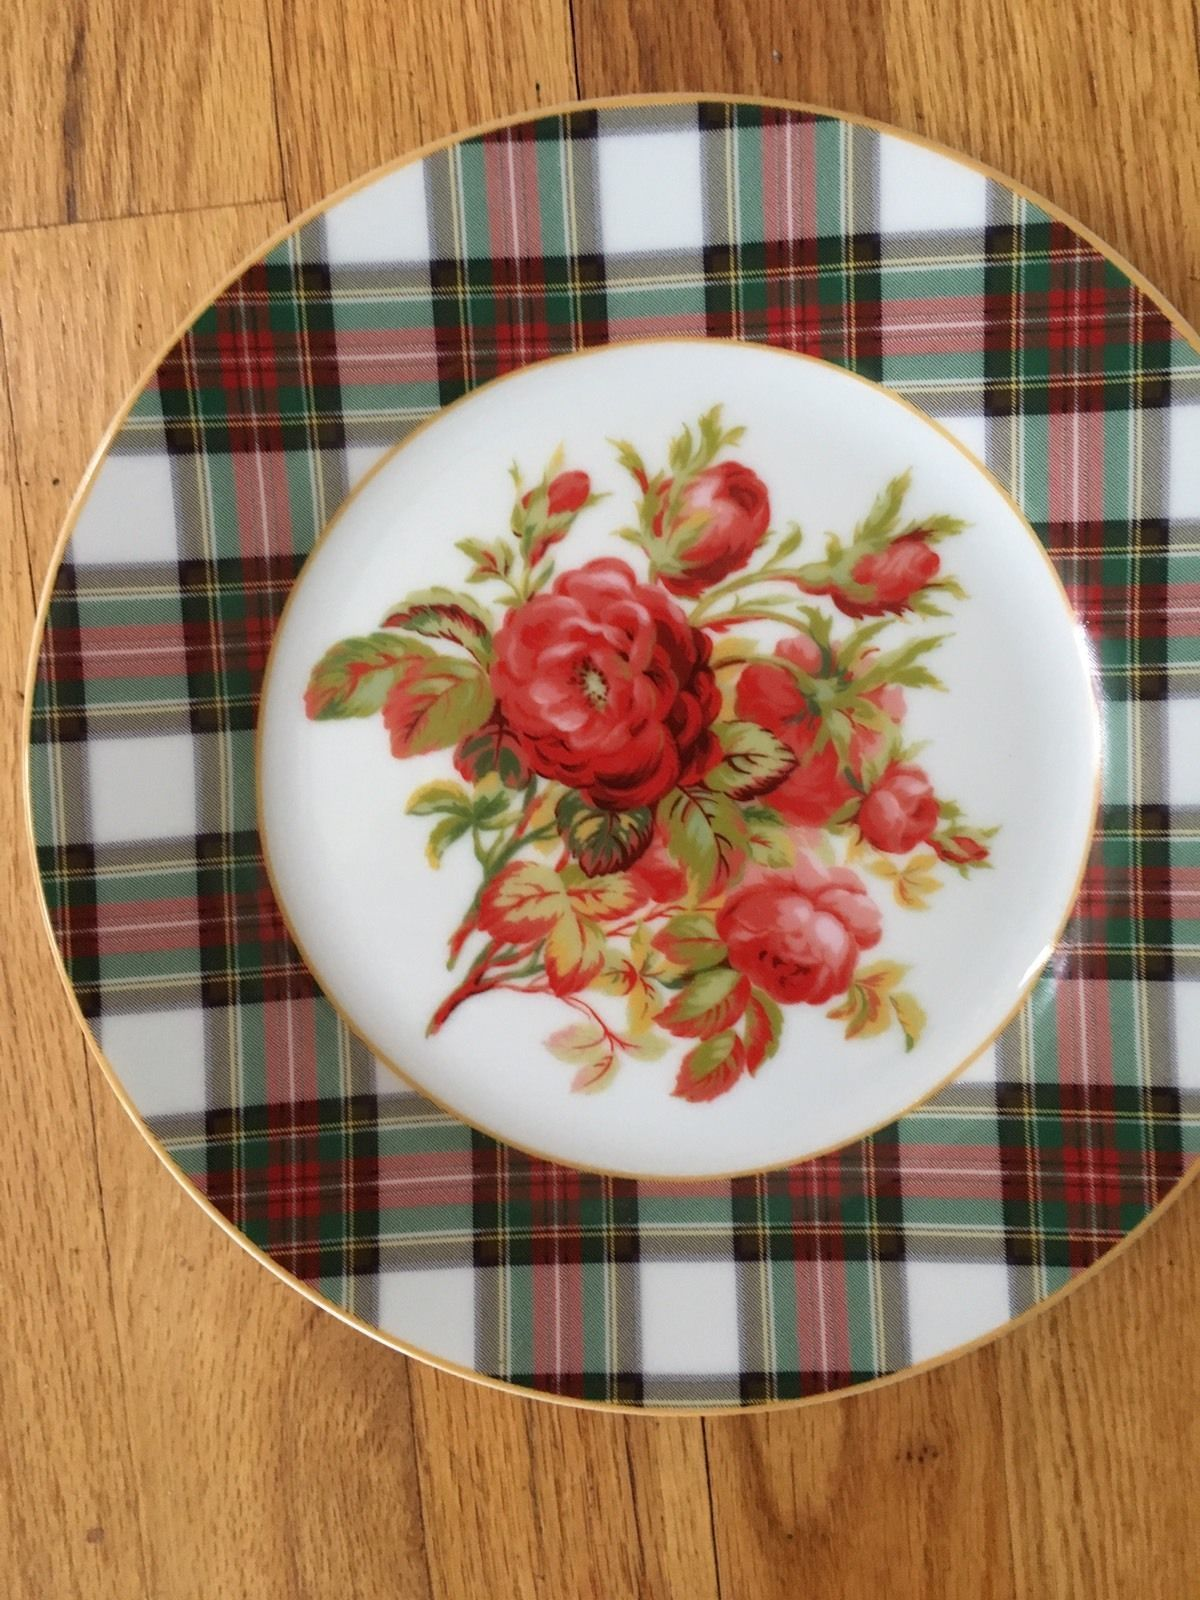 4 Ralph Lauren Tartan  Christmas Plaid Luncheon Plates Skyler Floral  Rose 9"